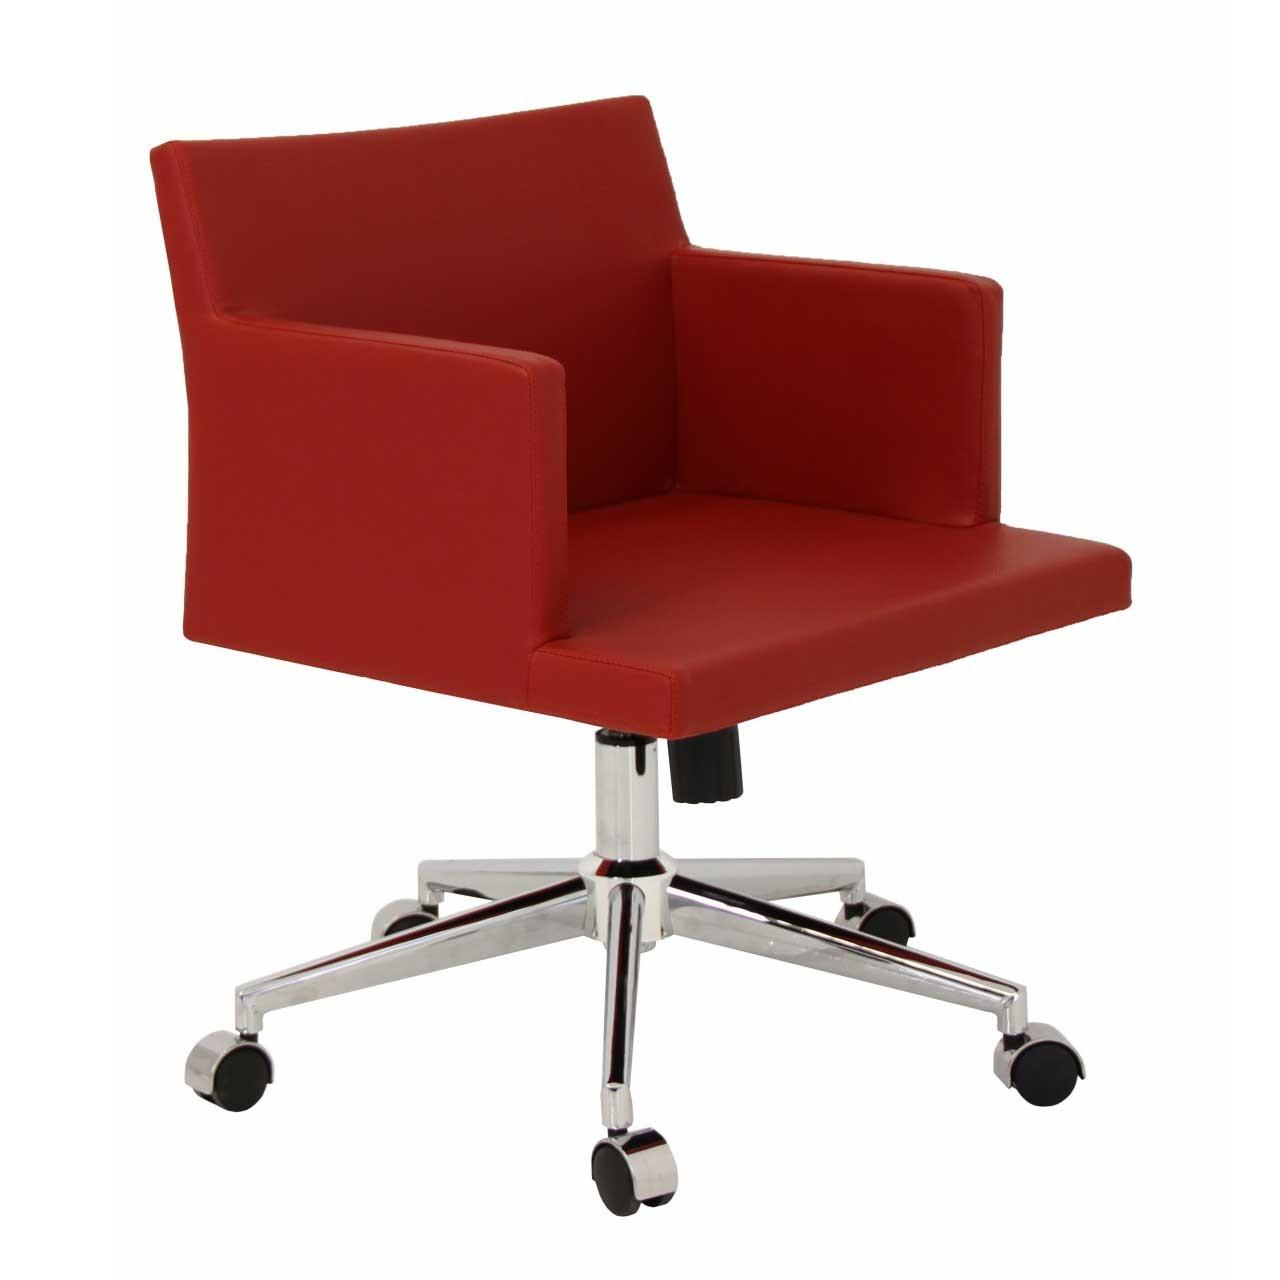 Big Office Chair Your